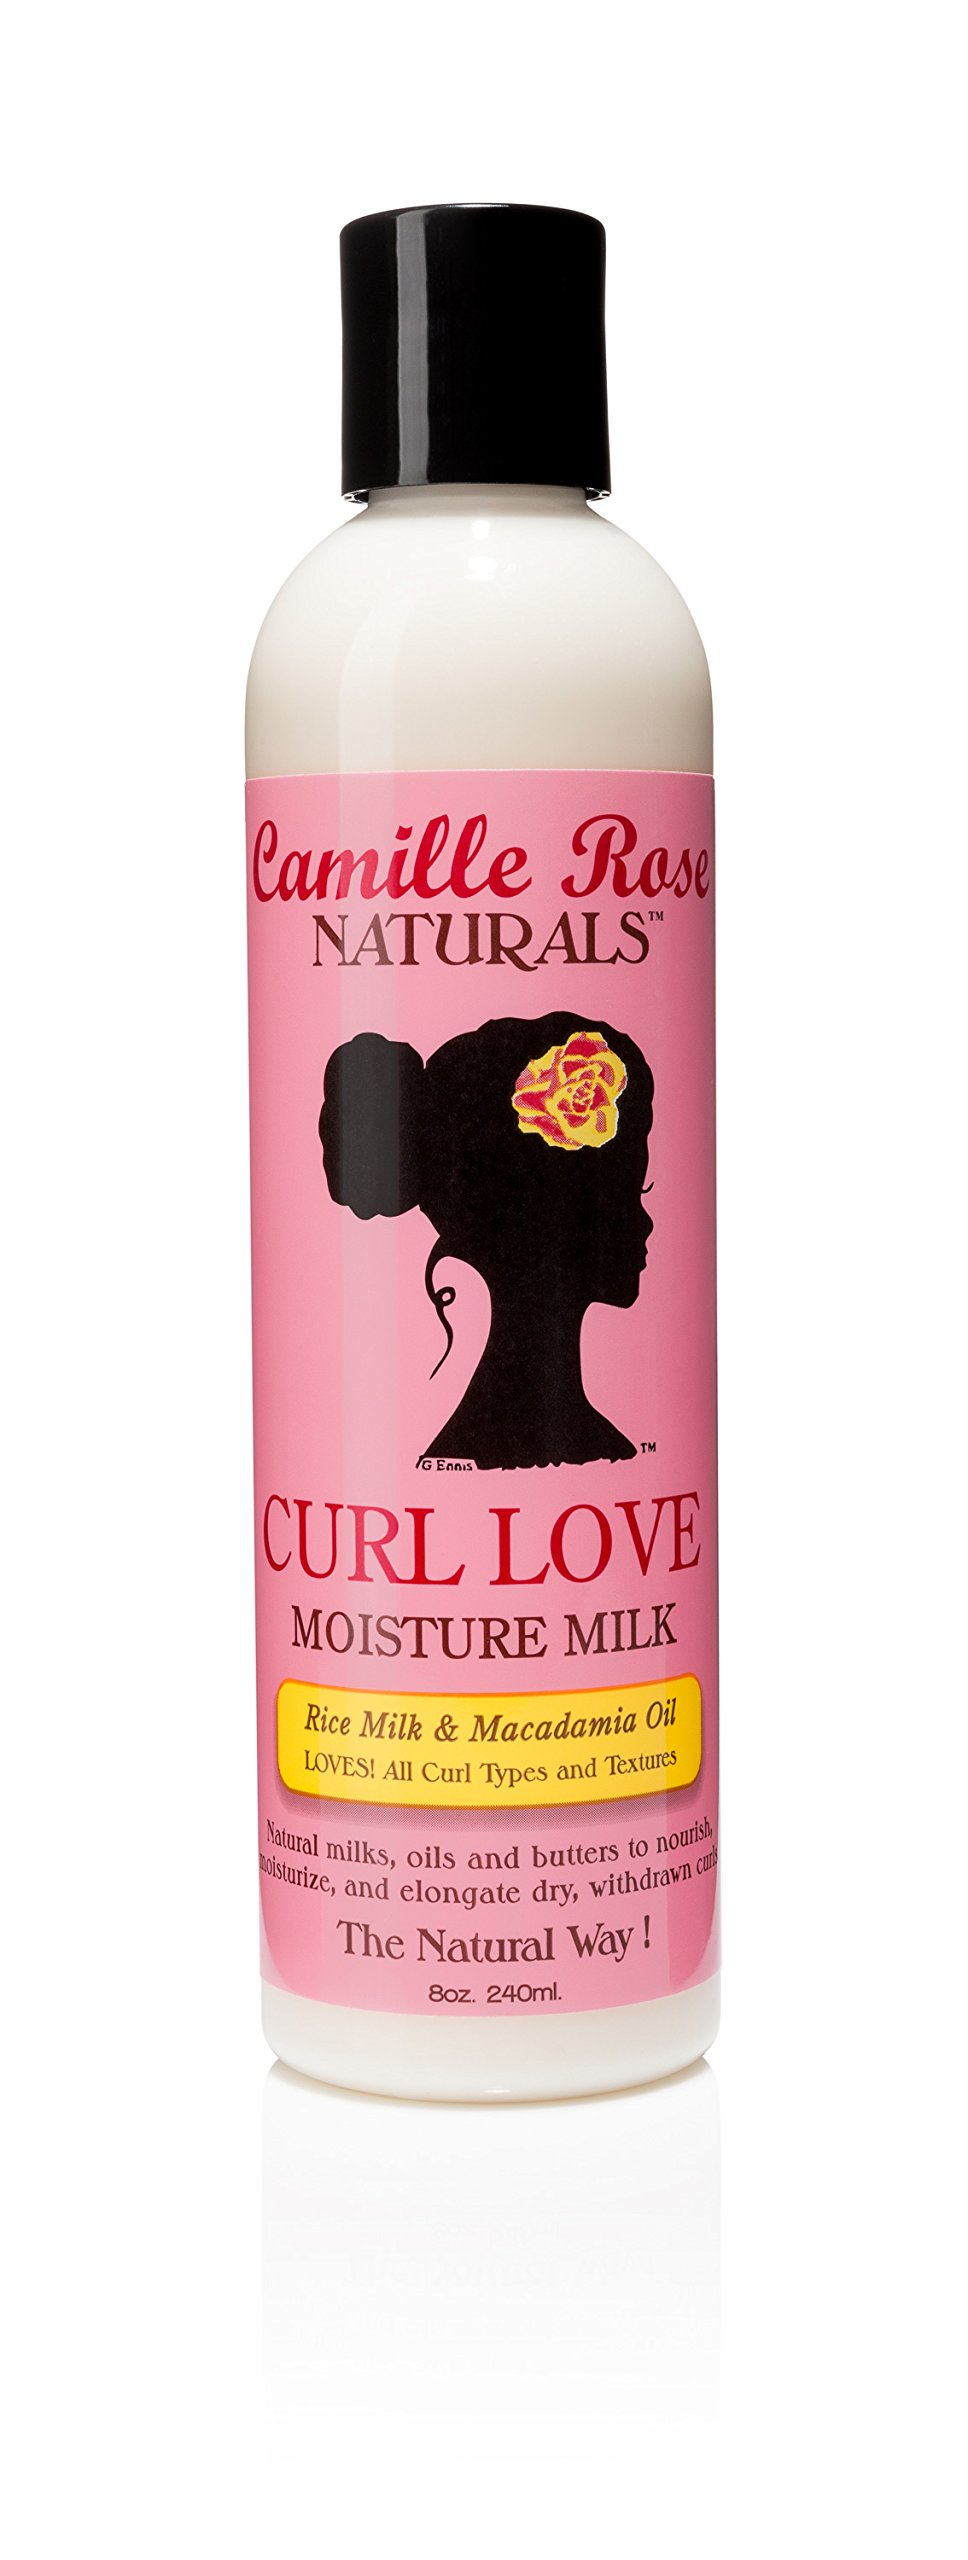 Camille Rose Naturals Curl Love Moisture Milk, 8 Ounce by Camille Rose